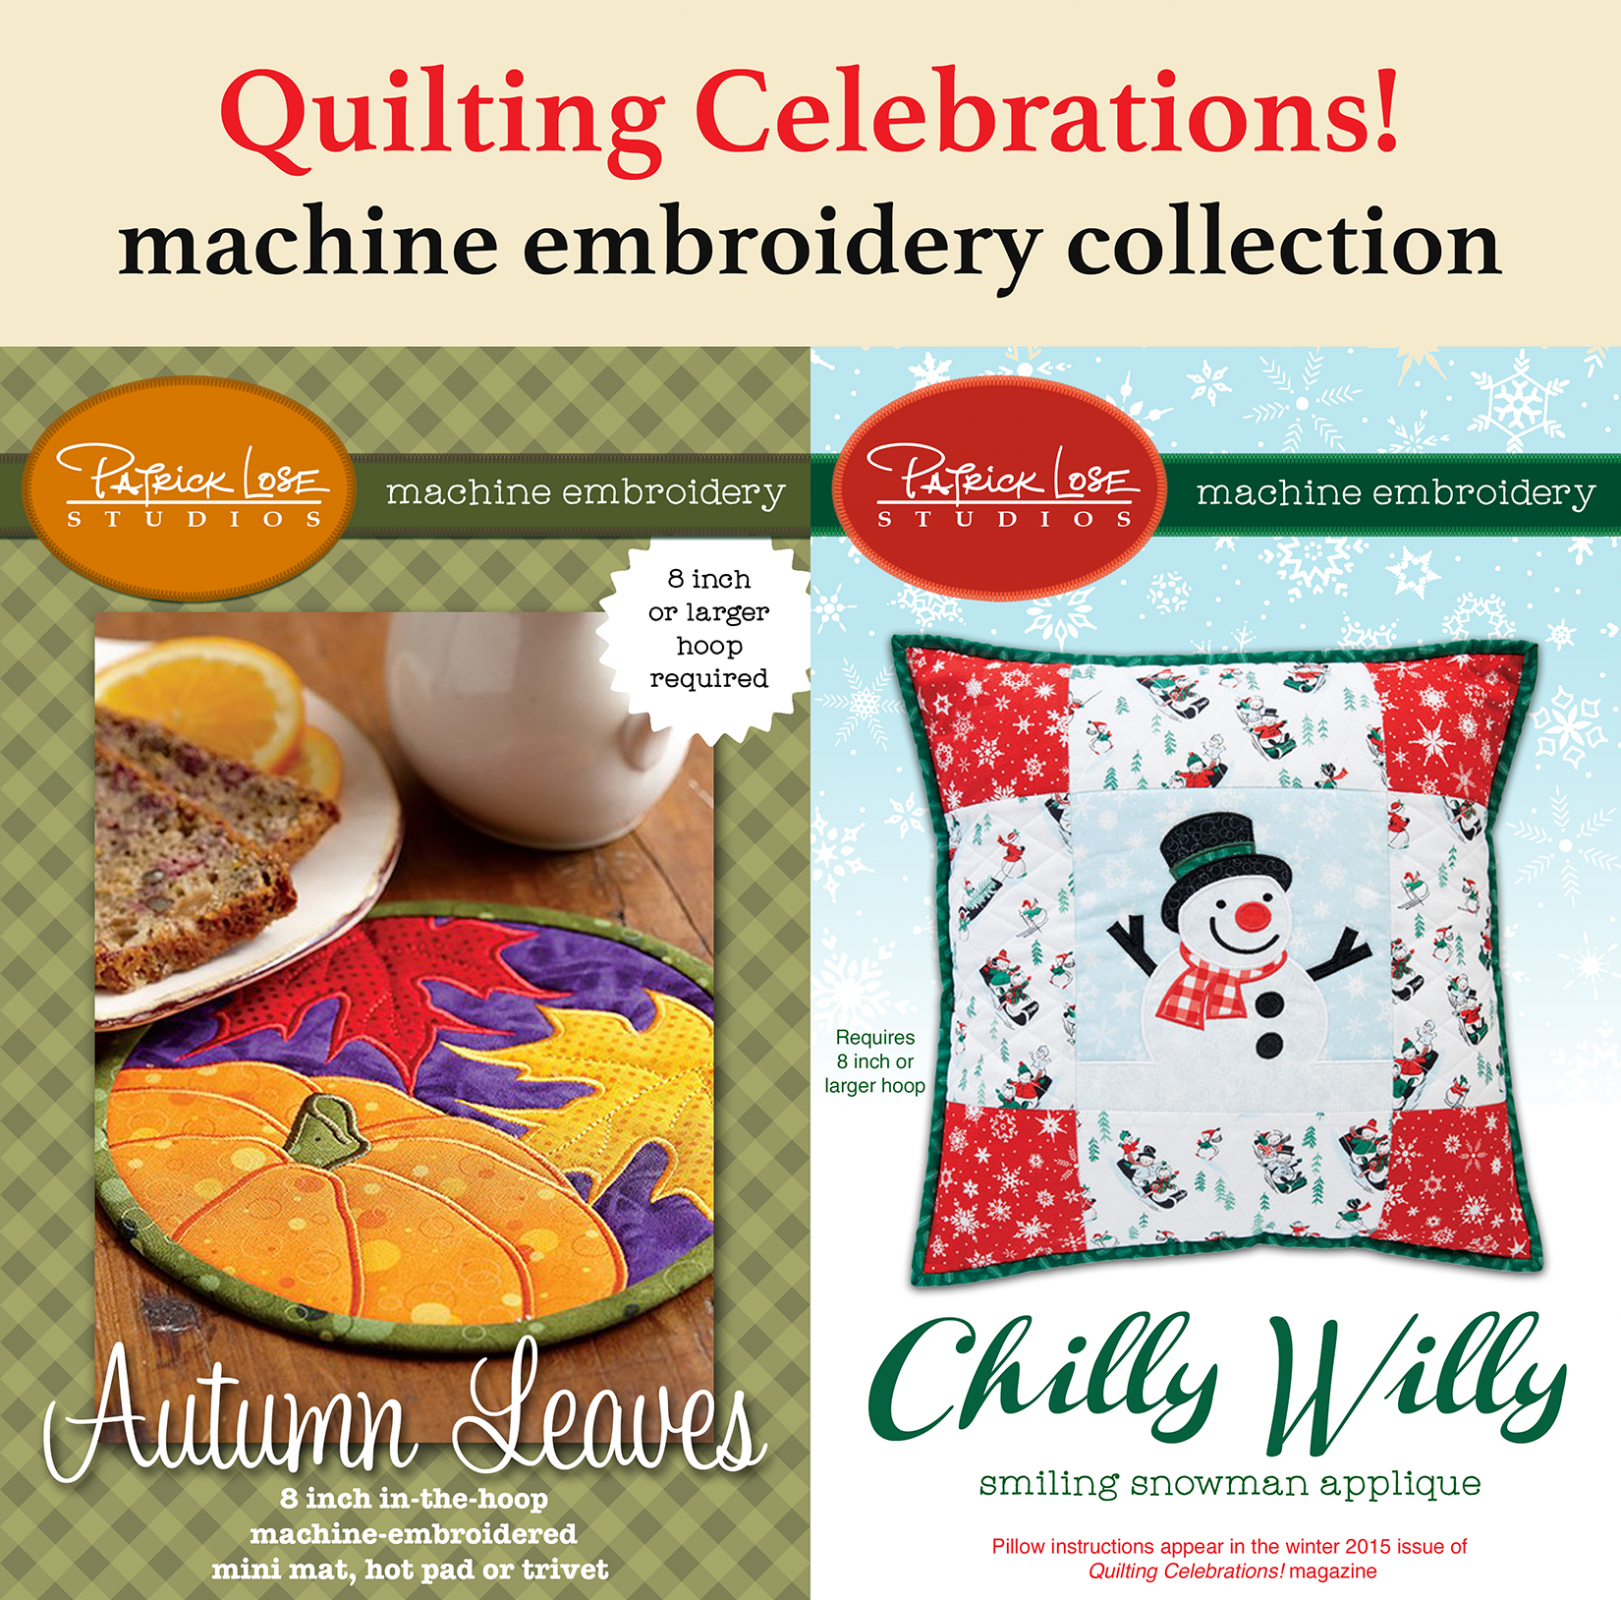 Quilting Celebrations branded USB collection SALE - 55% off!